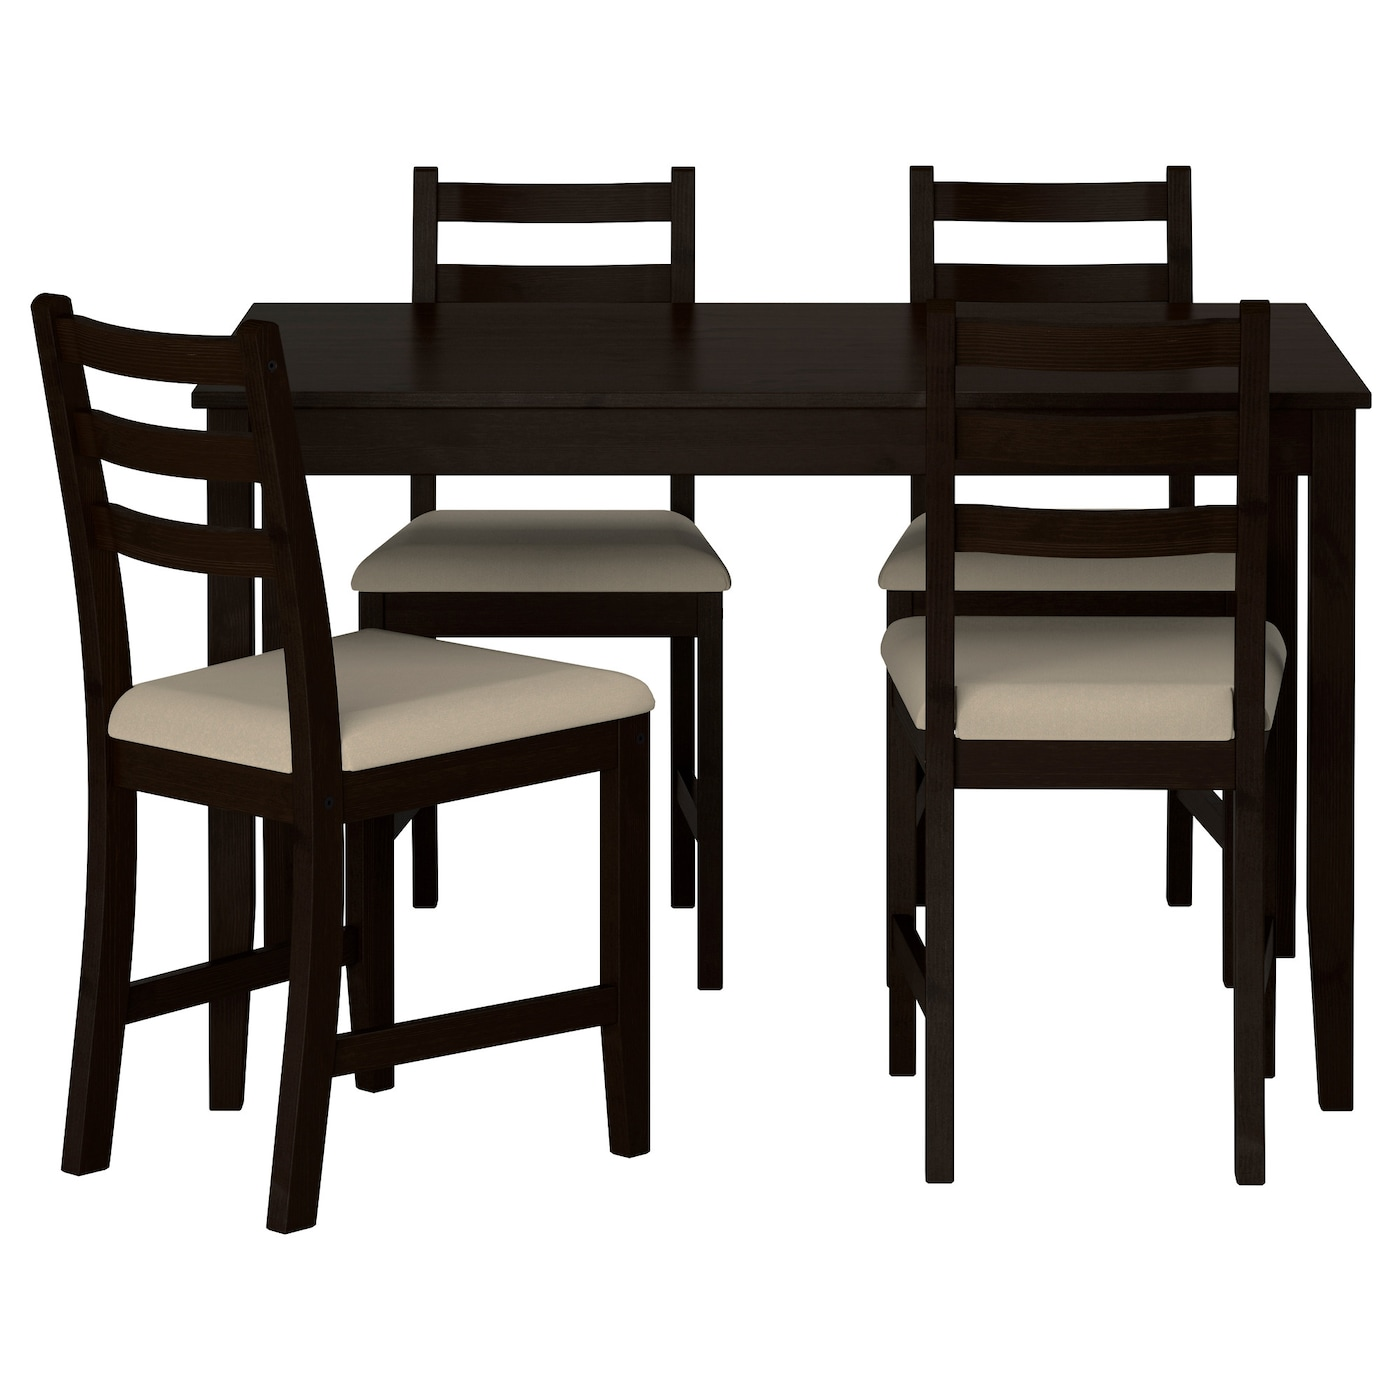 Lerhamn table and 4 chairs black brown ramna beige 118x74 for Table et chaise conforama